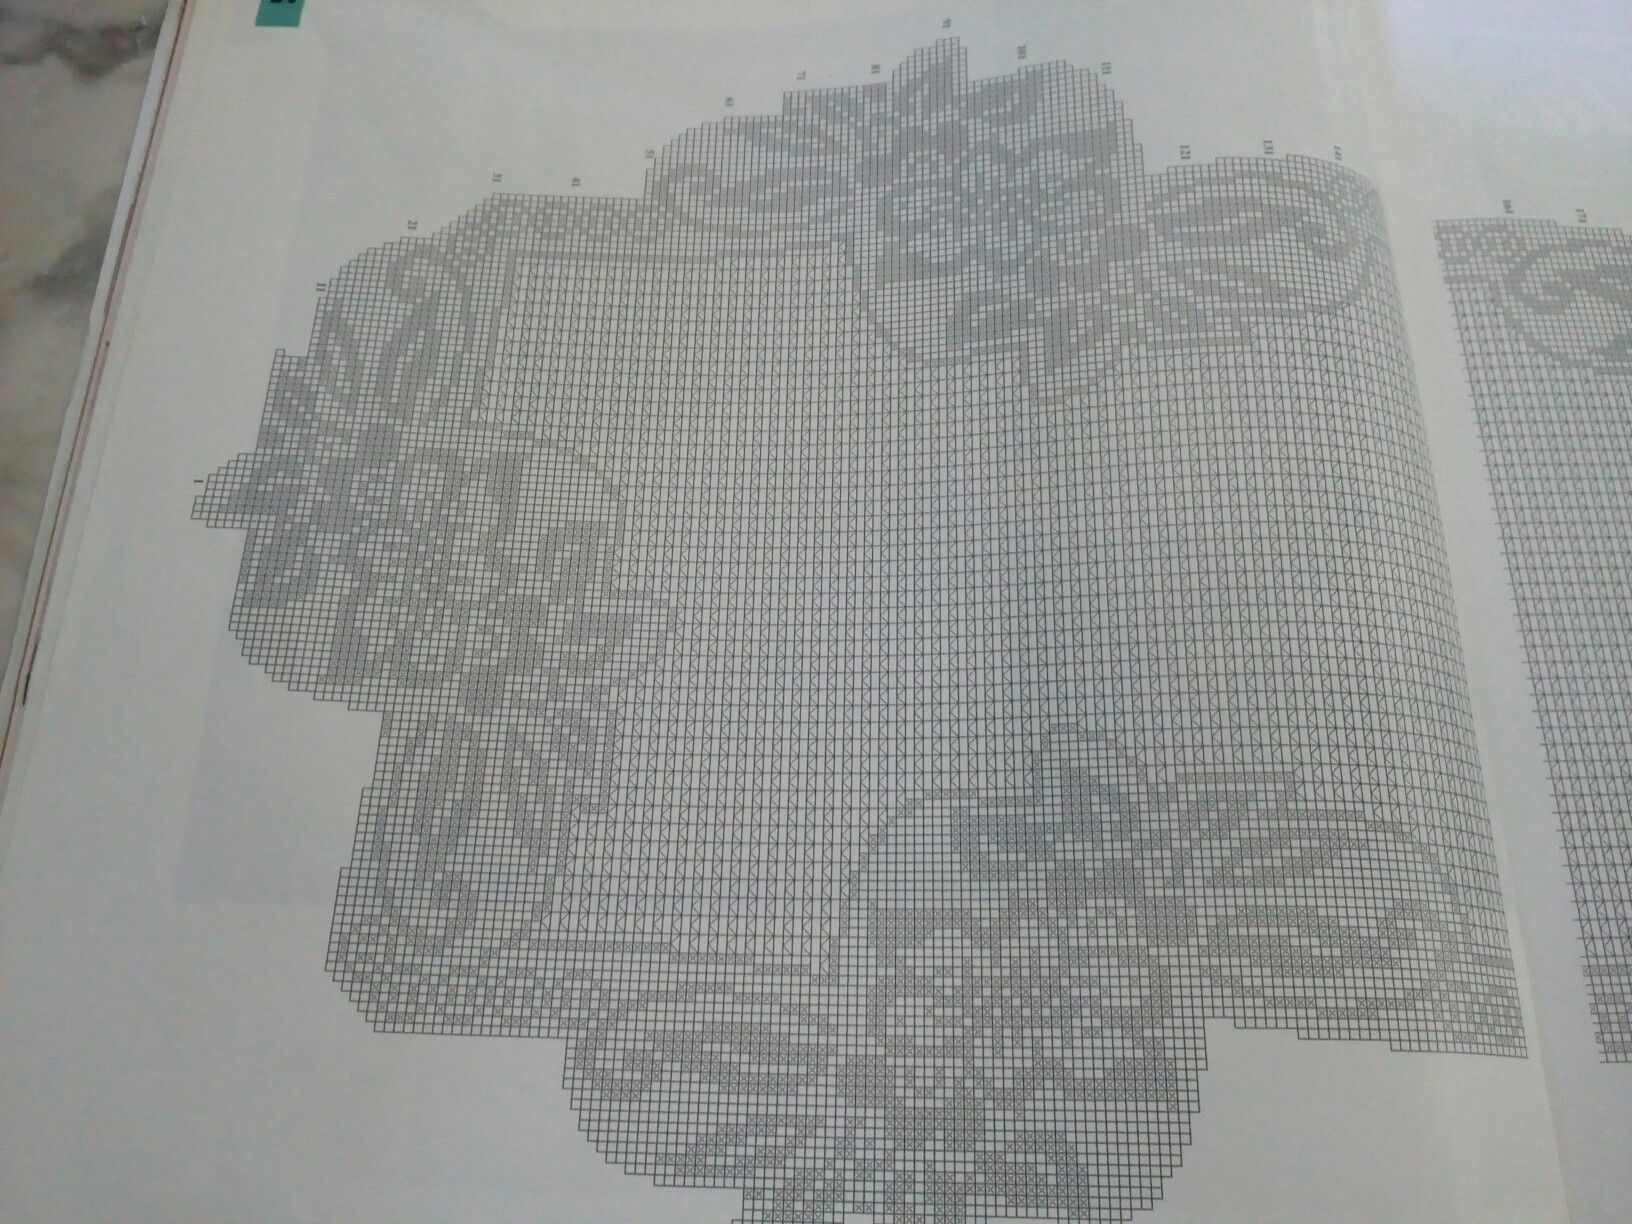 Filet crochet patterns for home decor free filet crochet pattern filet crochet patterns for home decor pin by tonka majeti on filethkeln pinterest filet crochet dt1010fo